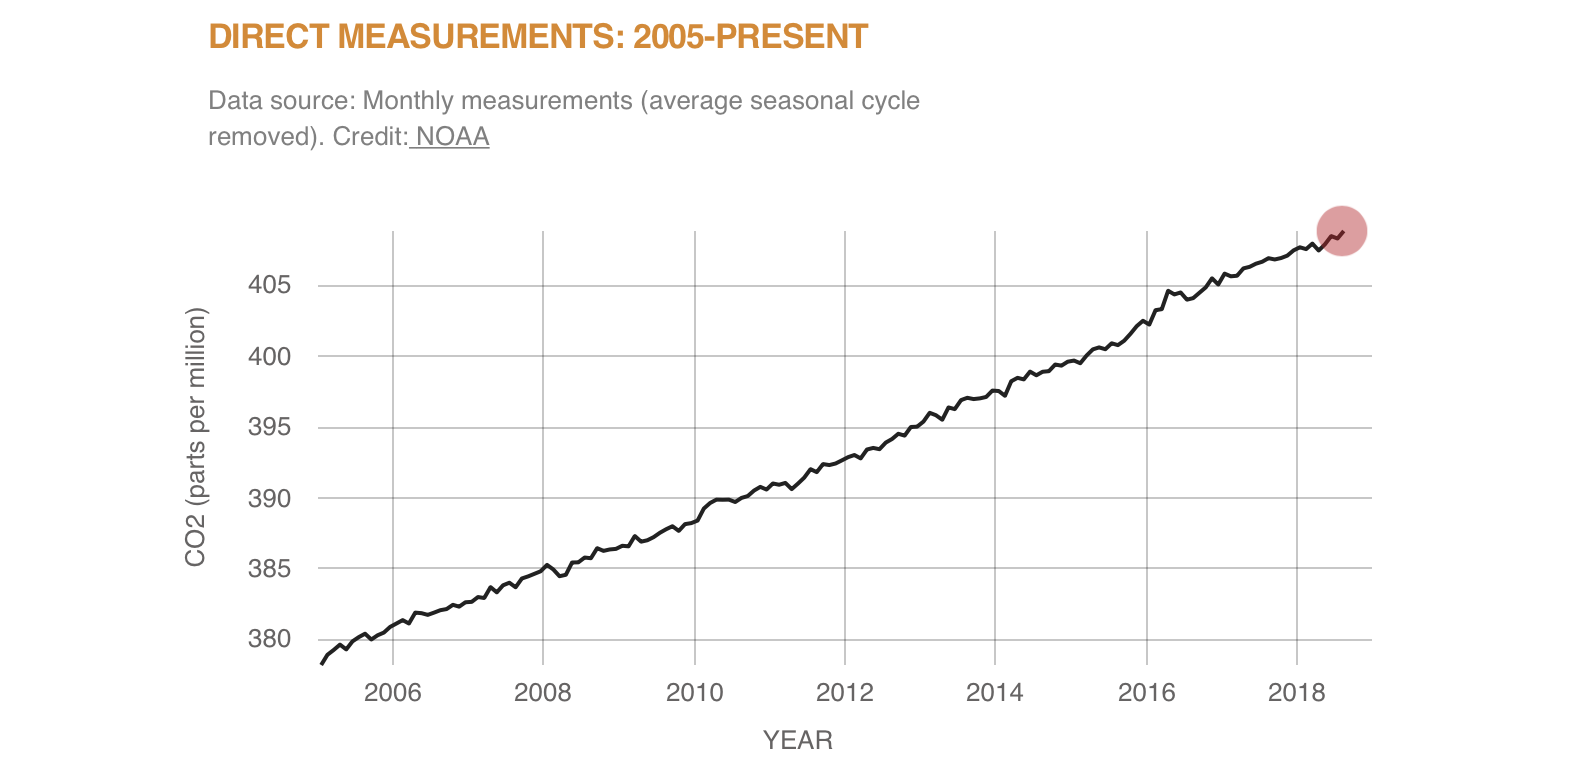 Source: https://climate.nasa.gov/vital-signs/carbon-dioxide/